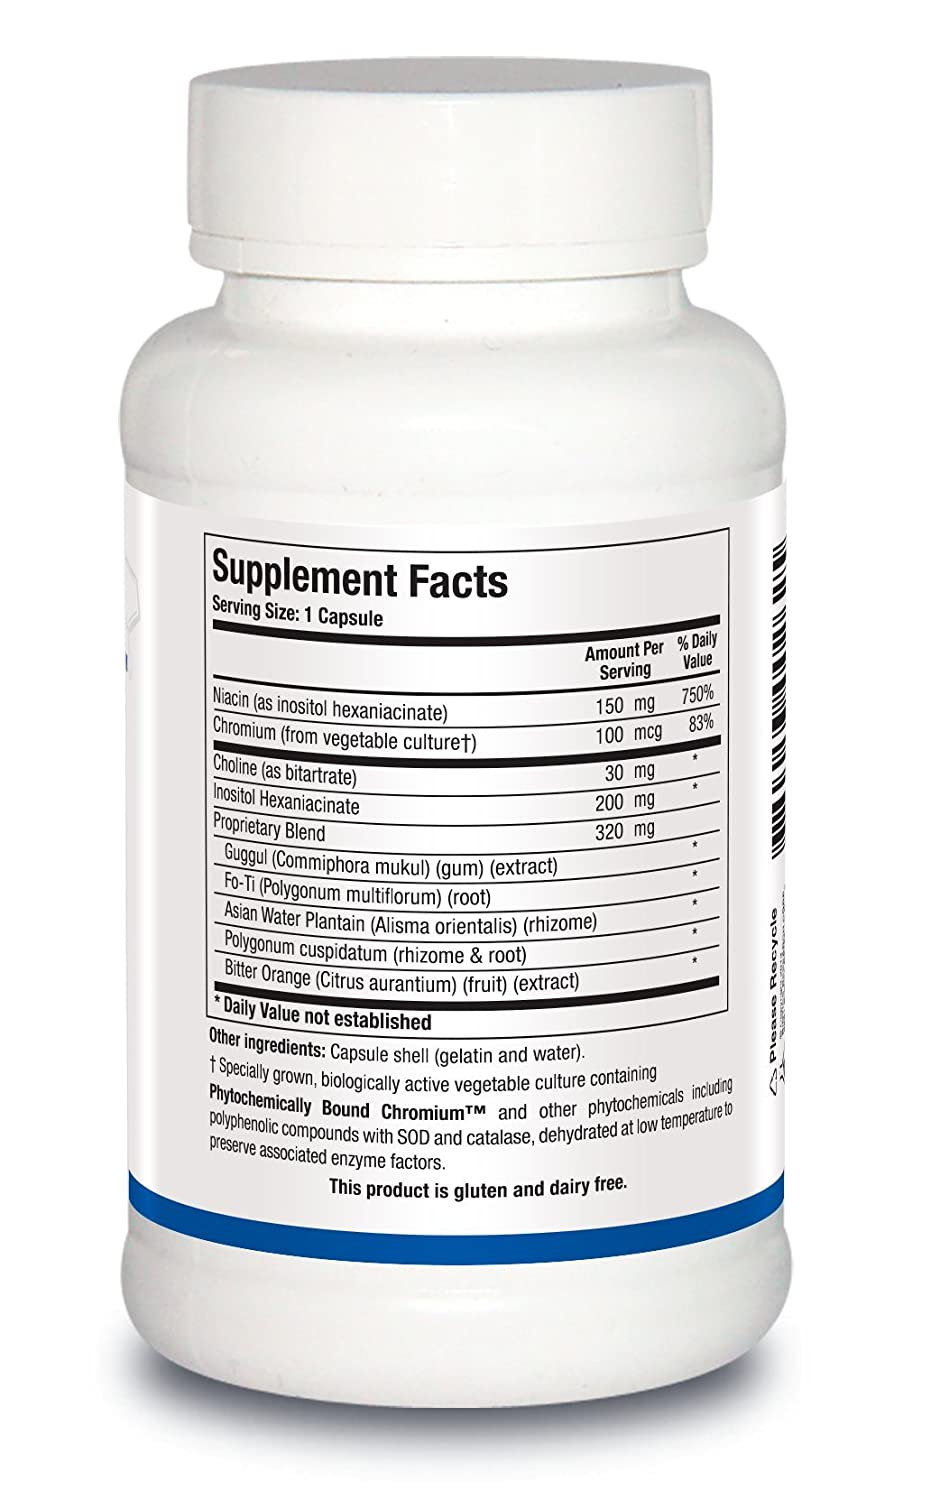 Biotics Research Tri-Chol Cardiovascular Support, Nutrients Combined to Support Healthy Blood Lipid Levels, Healthy Cholesterol, Sterols, Polygonum, Niacin, Chromium, Resveratrol. 90 Caps